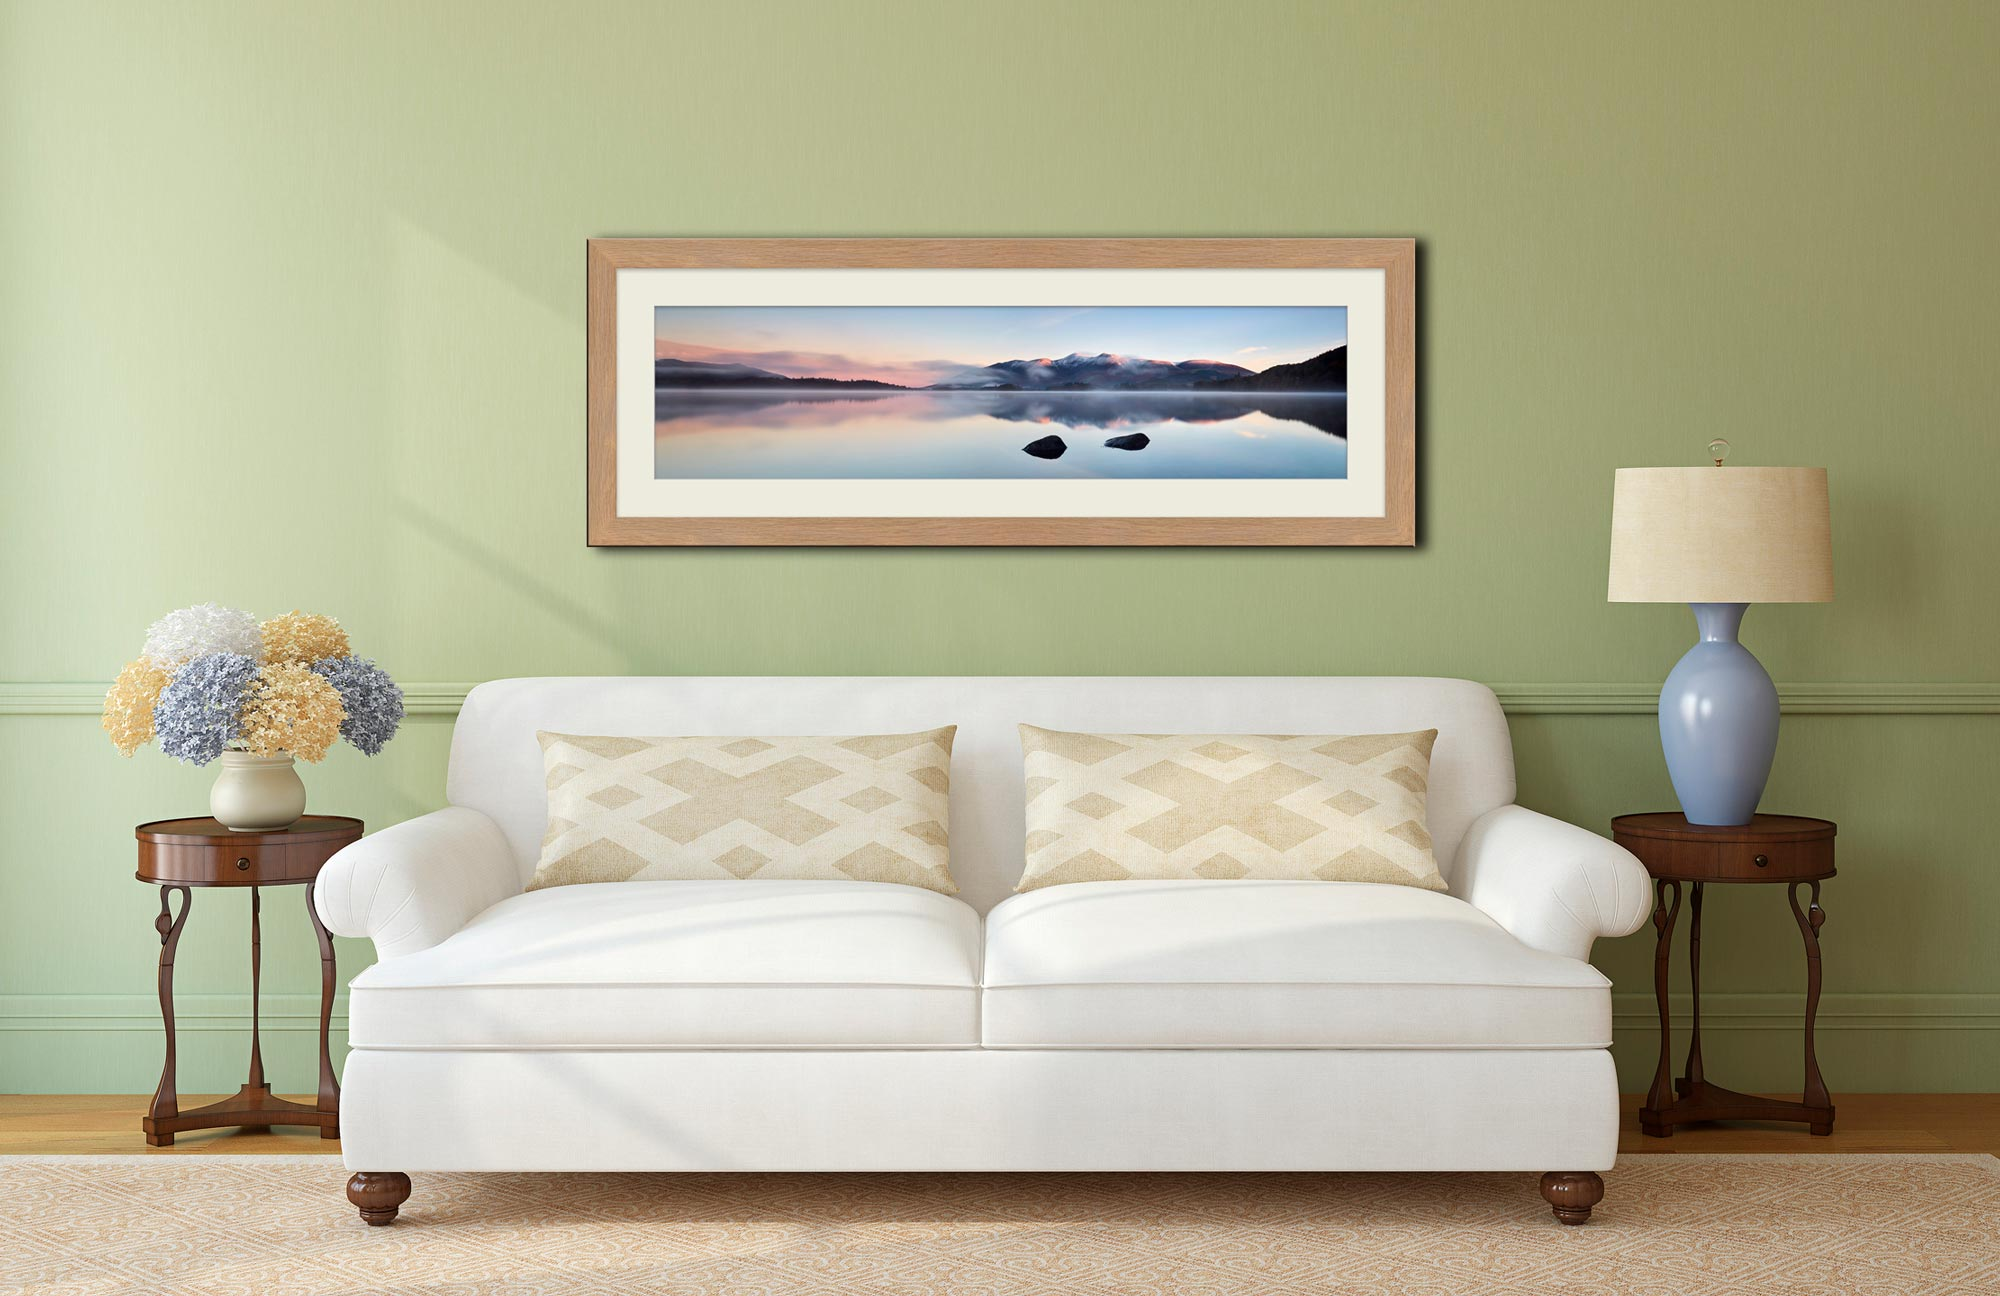 A New Day Dawns at Derwent Water - Framed Print with Mount on Wall